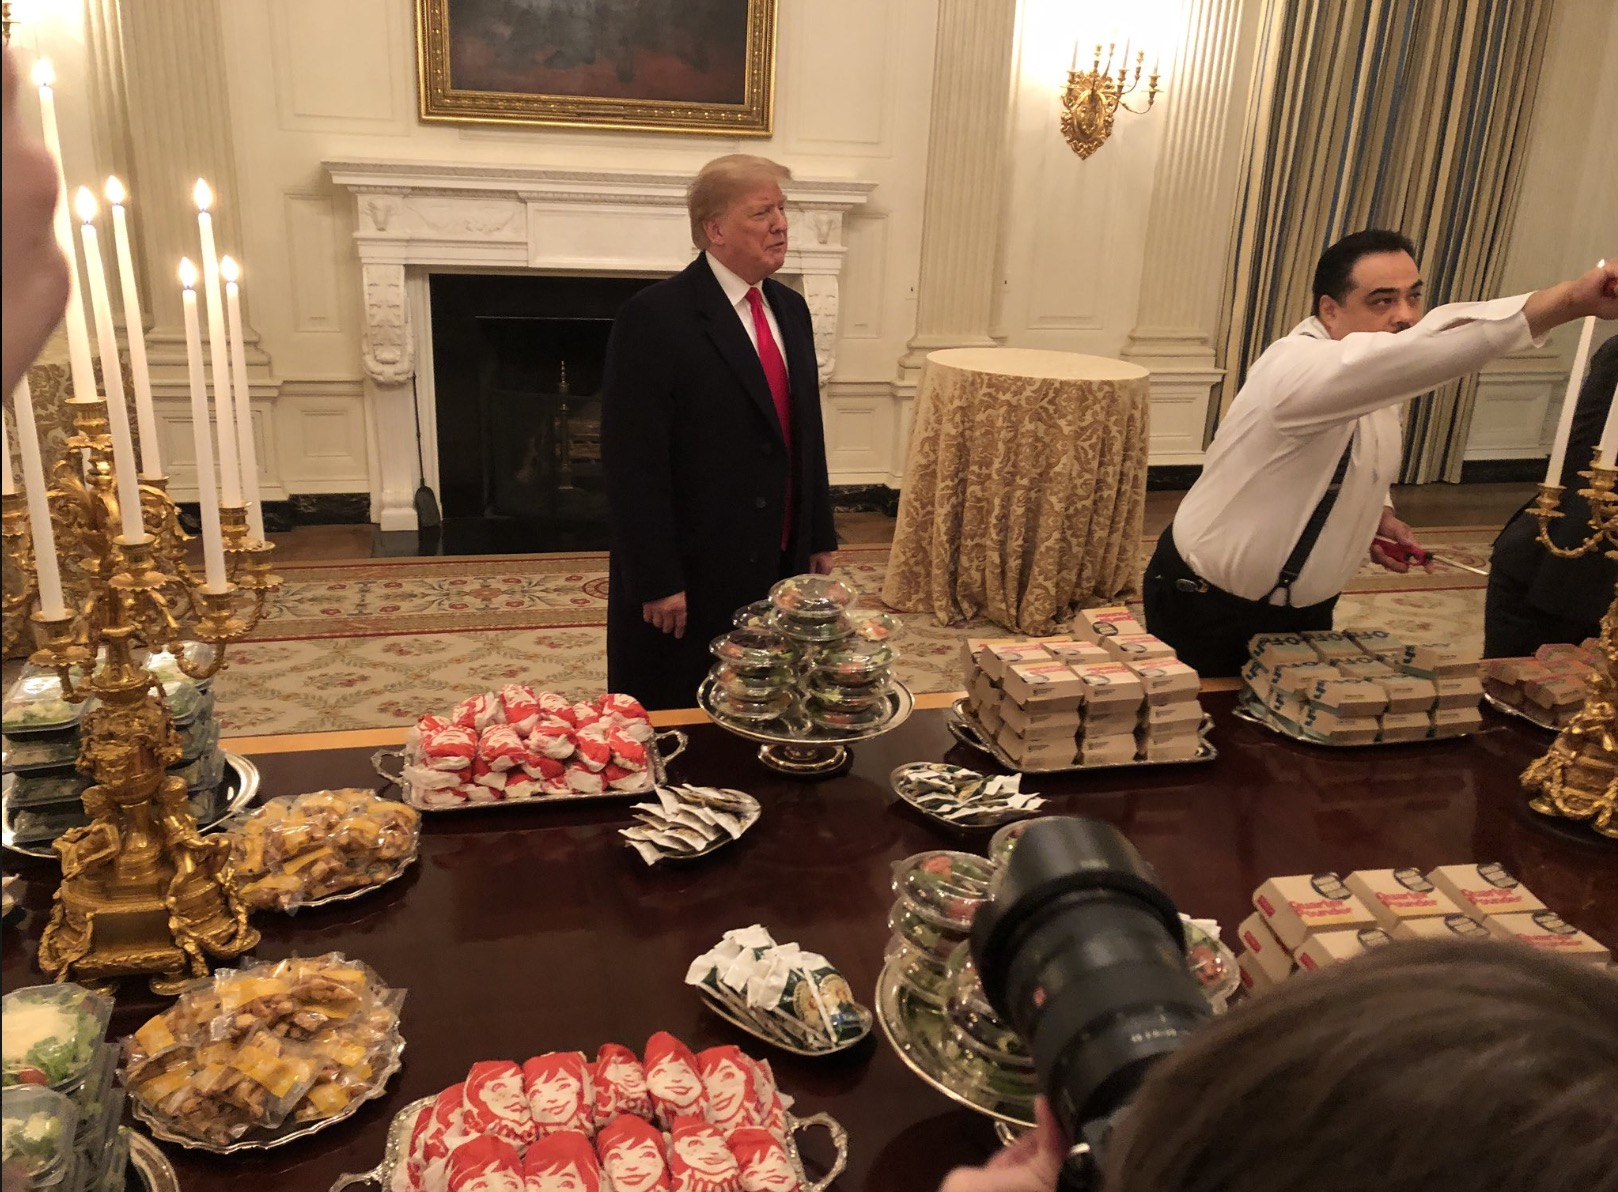 Trump Greets Clemson Players at White House With 'Great American' Fast Food Spread